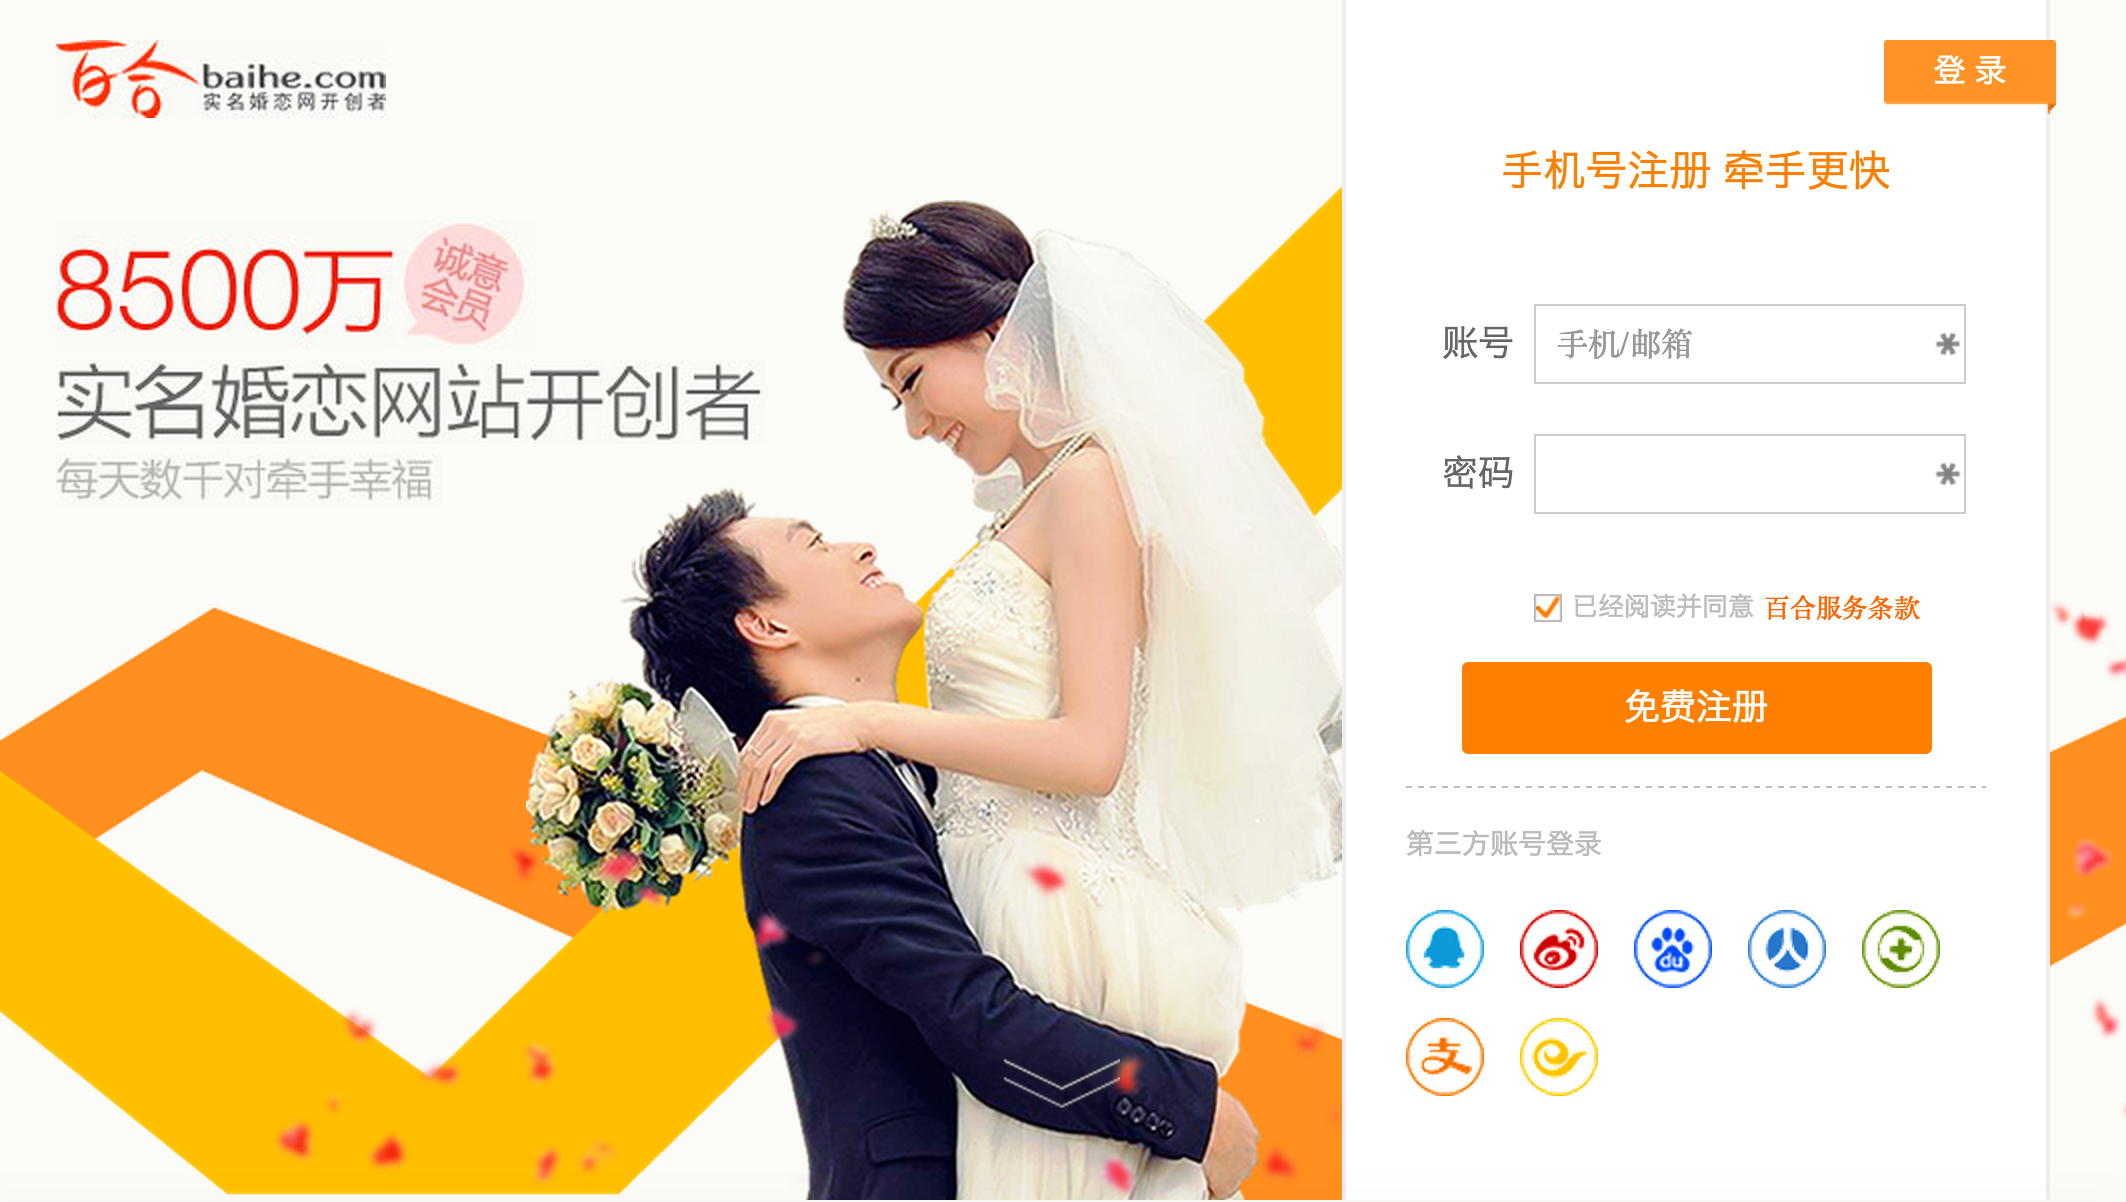 baihe online dating Baihe ceo to speak at the 41st international idate dating industry conference on may 28-29 in beijing jason tian is the ceo of baihe and will be interviewed by mark brooks of online personals watch.